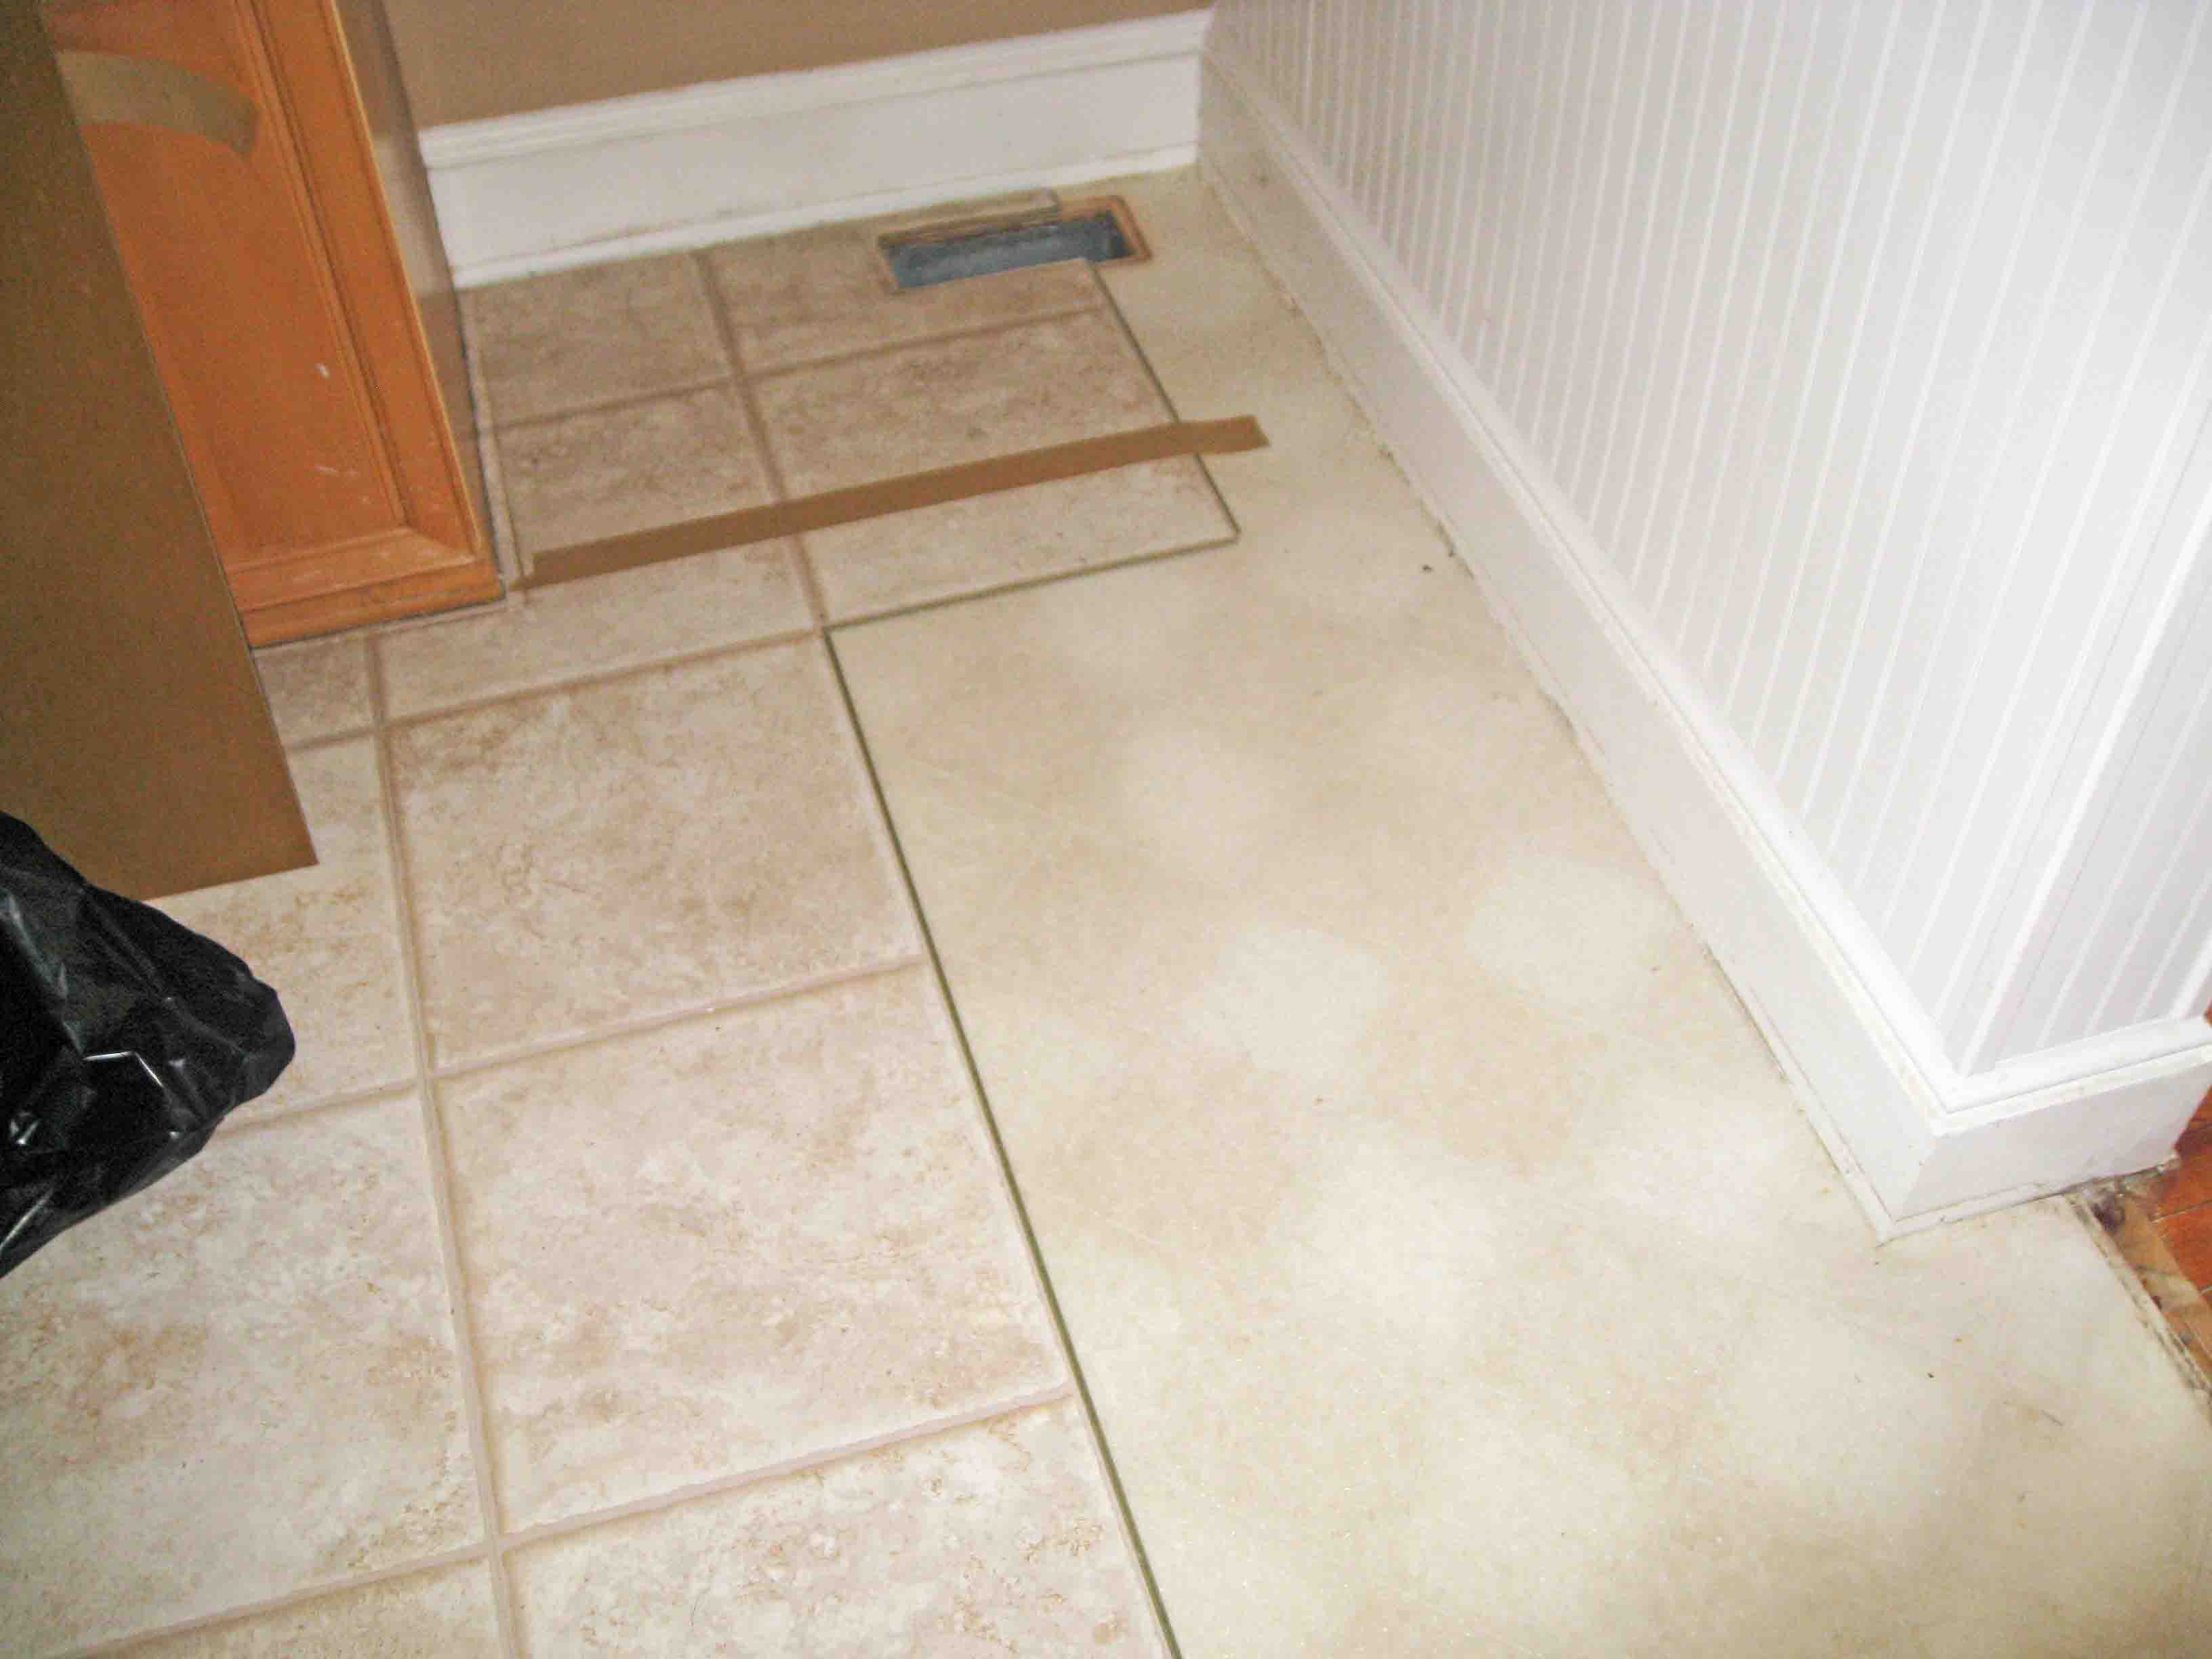 Superb How To Remove Linoleum Ing Layers Linoleum Sunshineandsawdust How To Remove Linoleum Install Tile How To Remove Linoleum Glued To Concrete houzz 01 How To Remove Linoleum